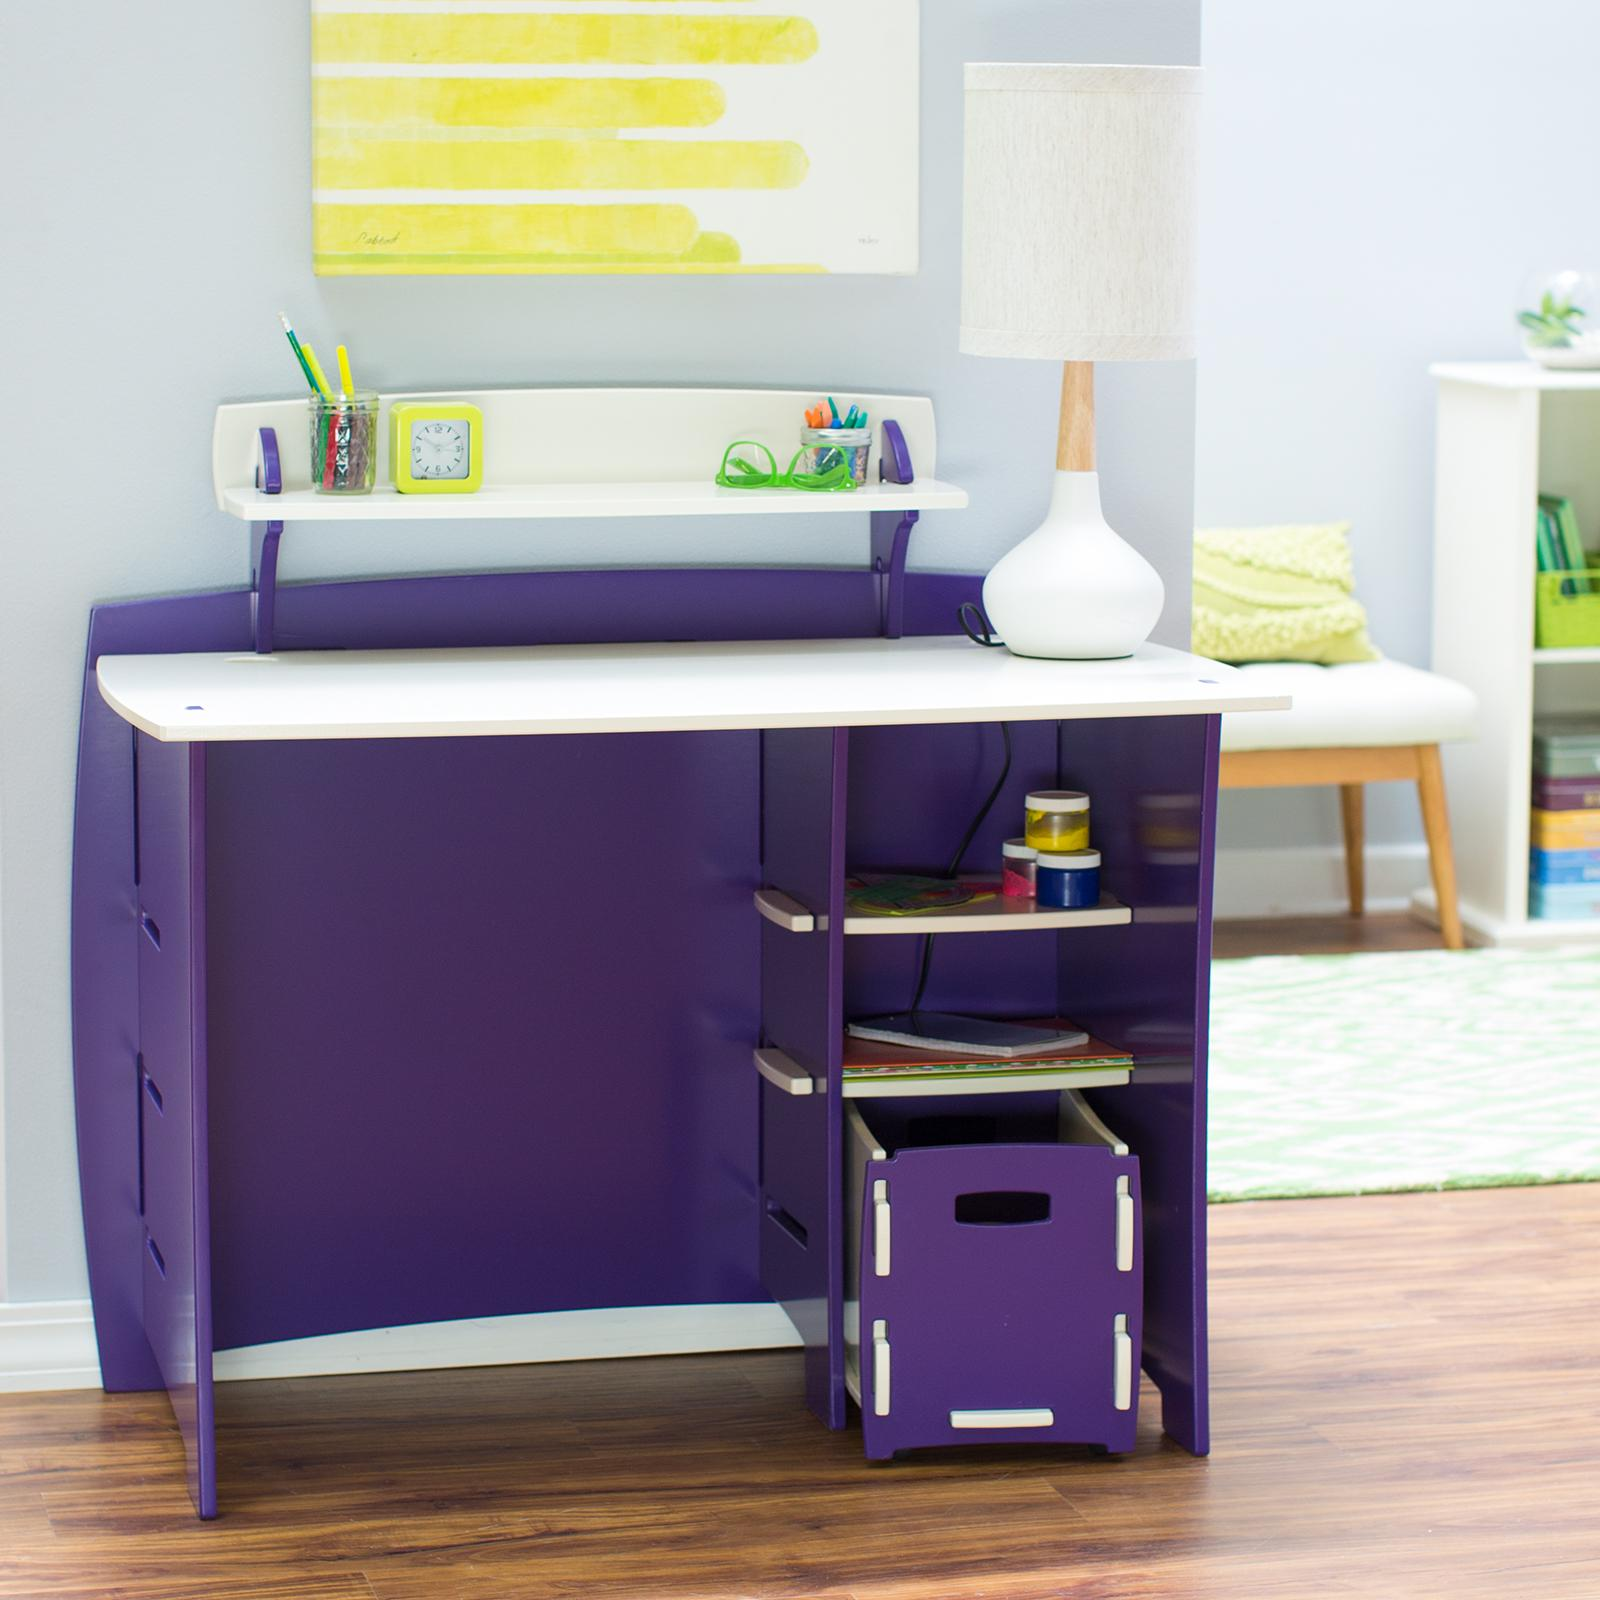 LEGARE Kids 43 in. Desk with Shelf and File Cart - Purple...